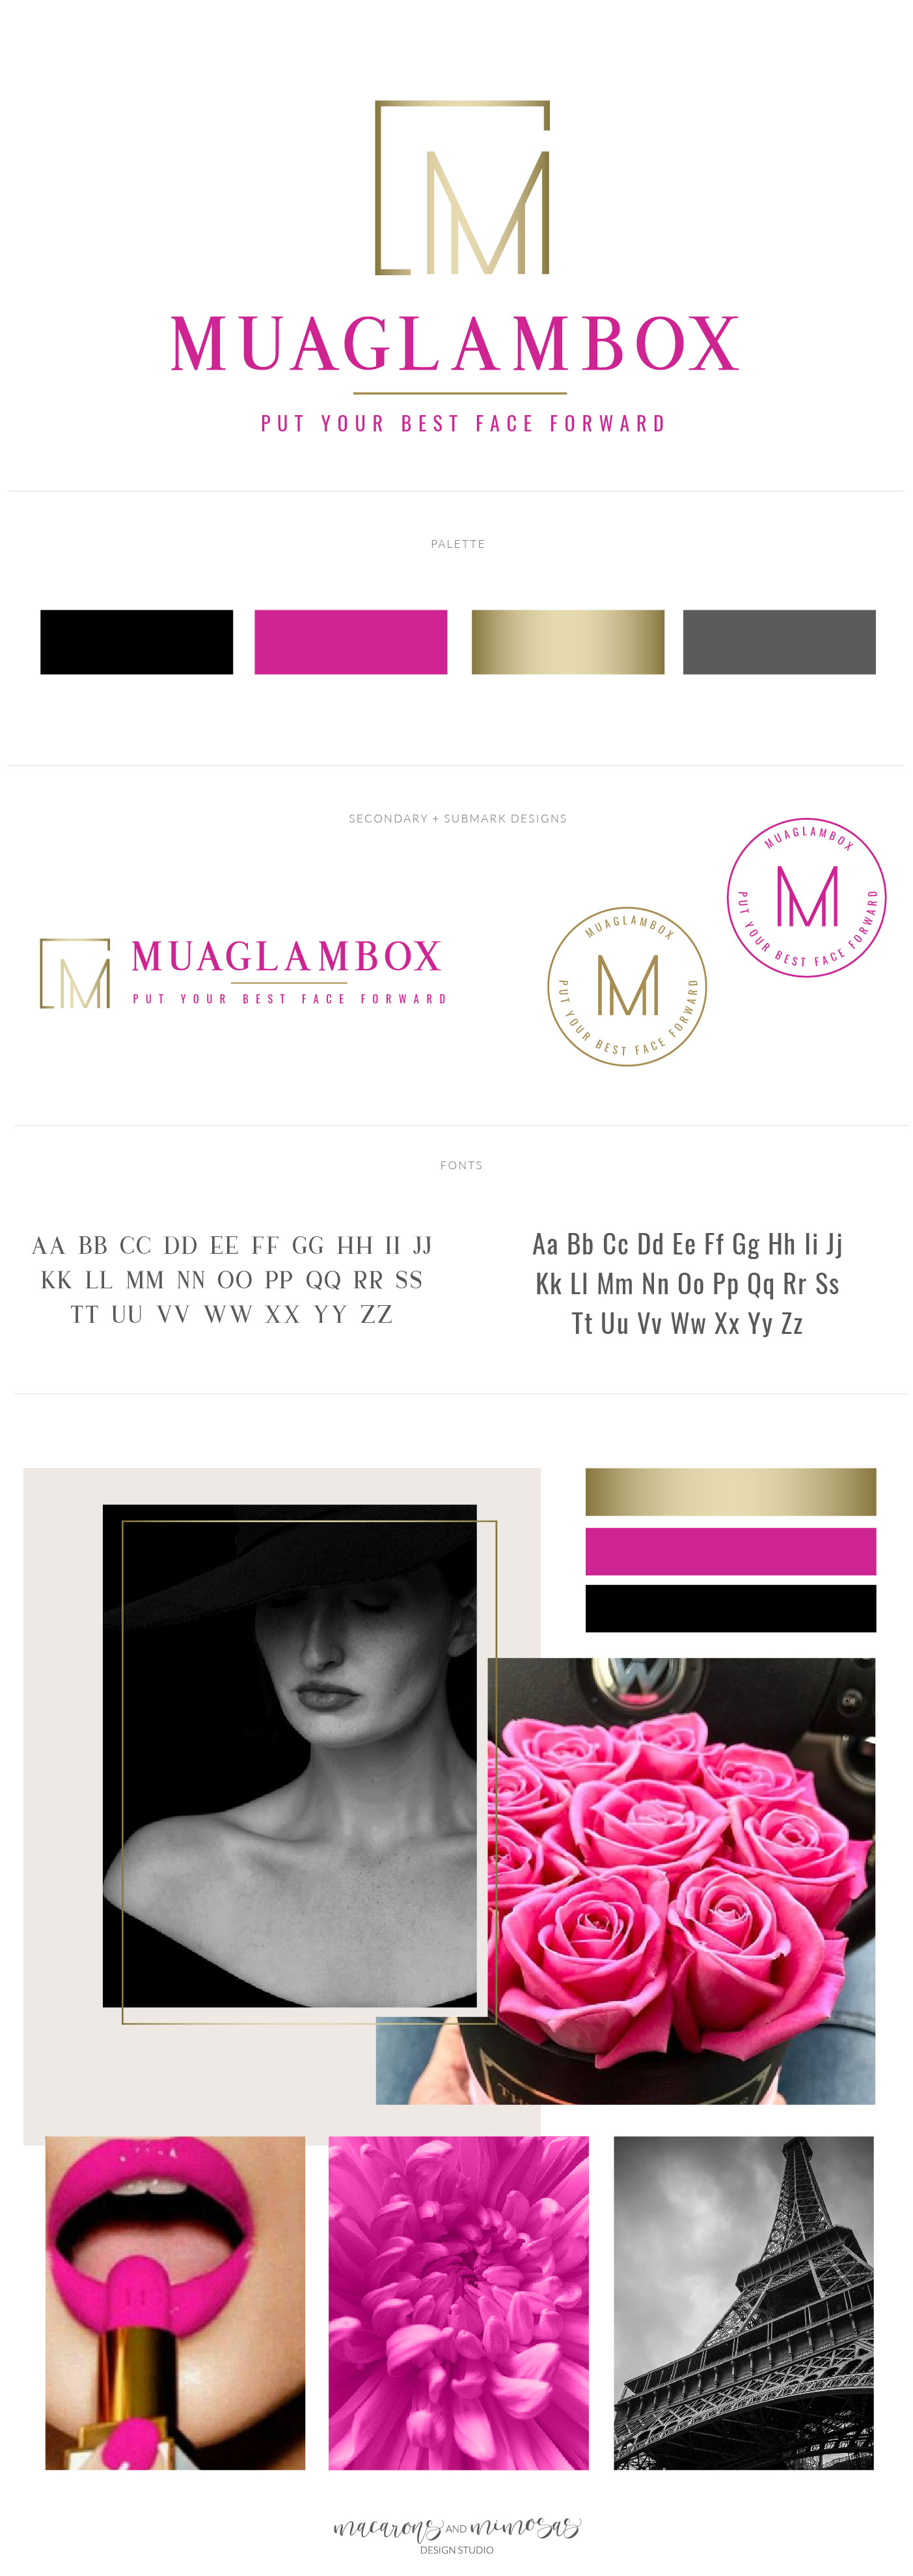 beauty logo design, makeup logo branding, makeup and beauty logo, pink and black logo design, custom logo design clean